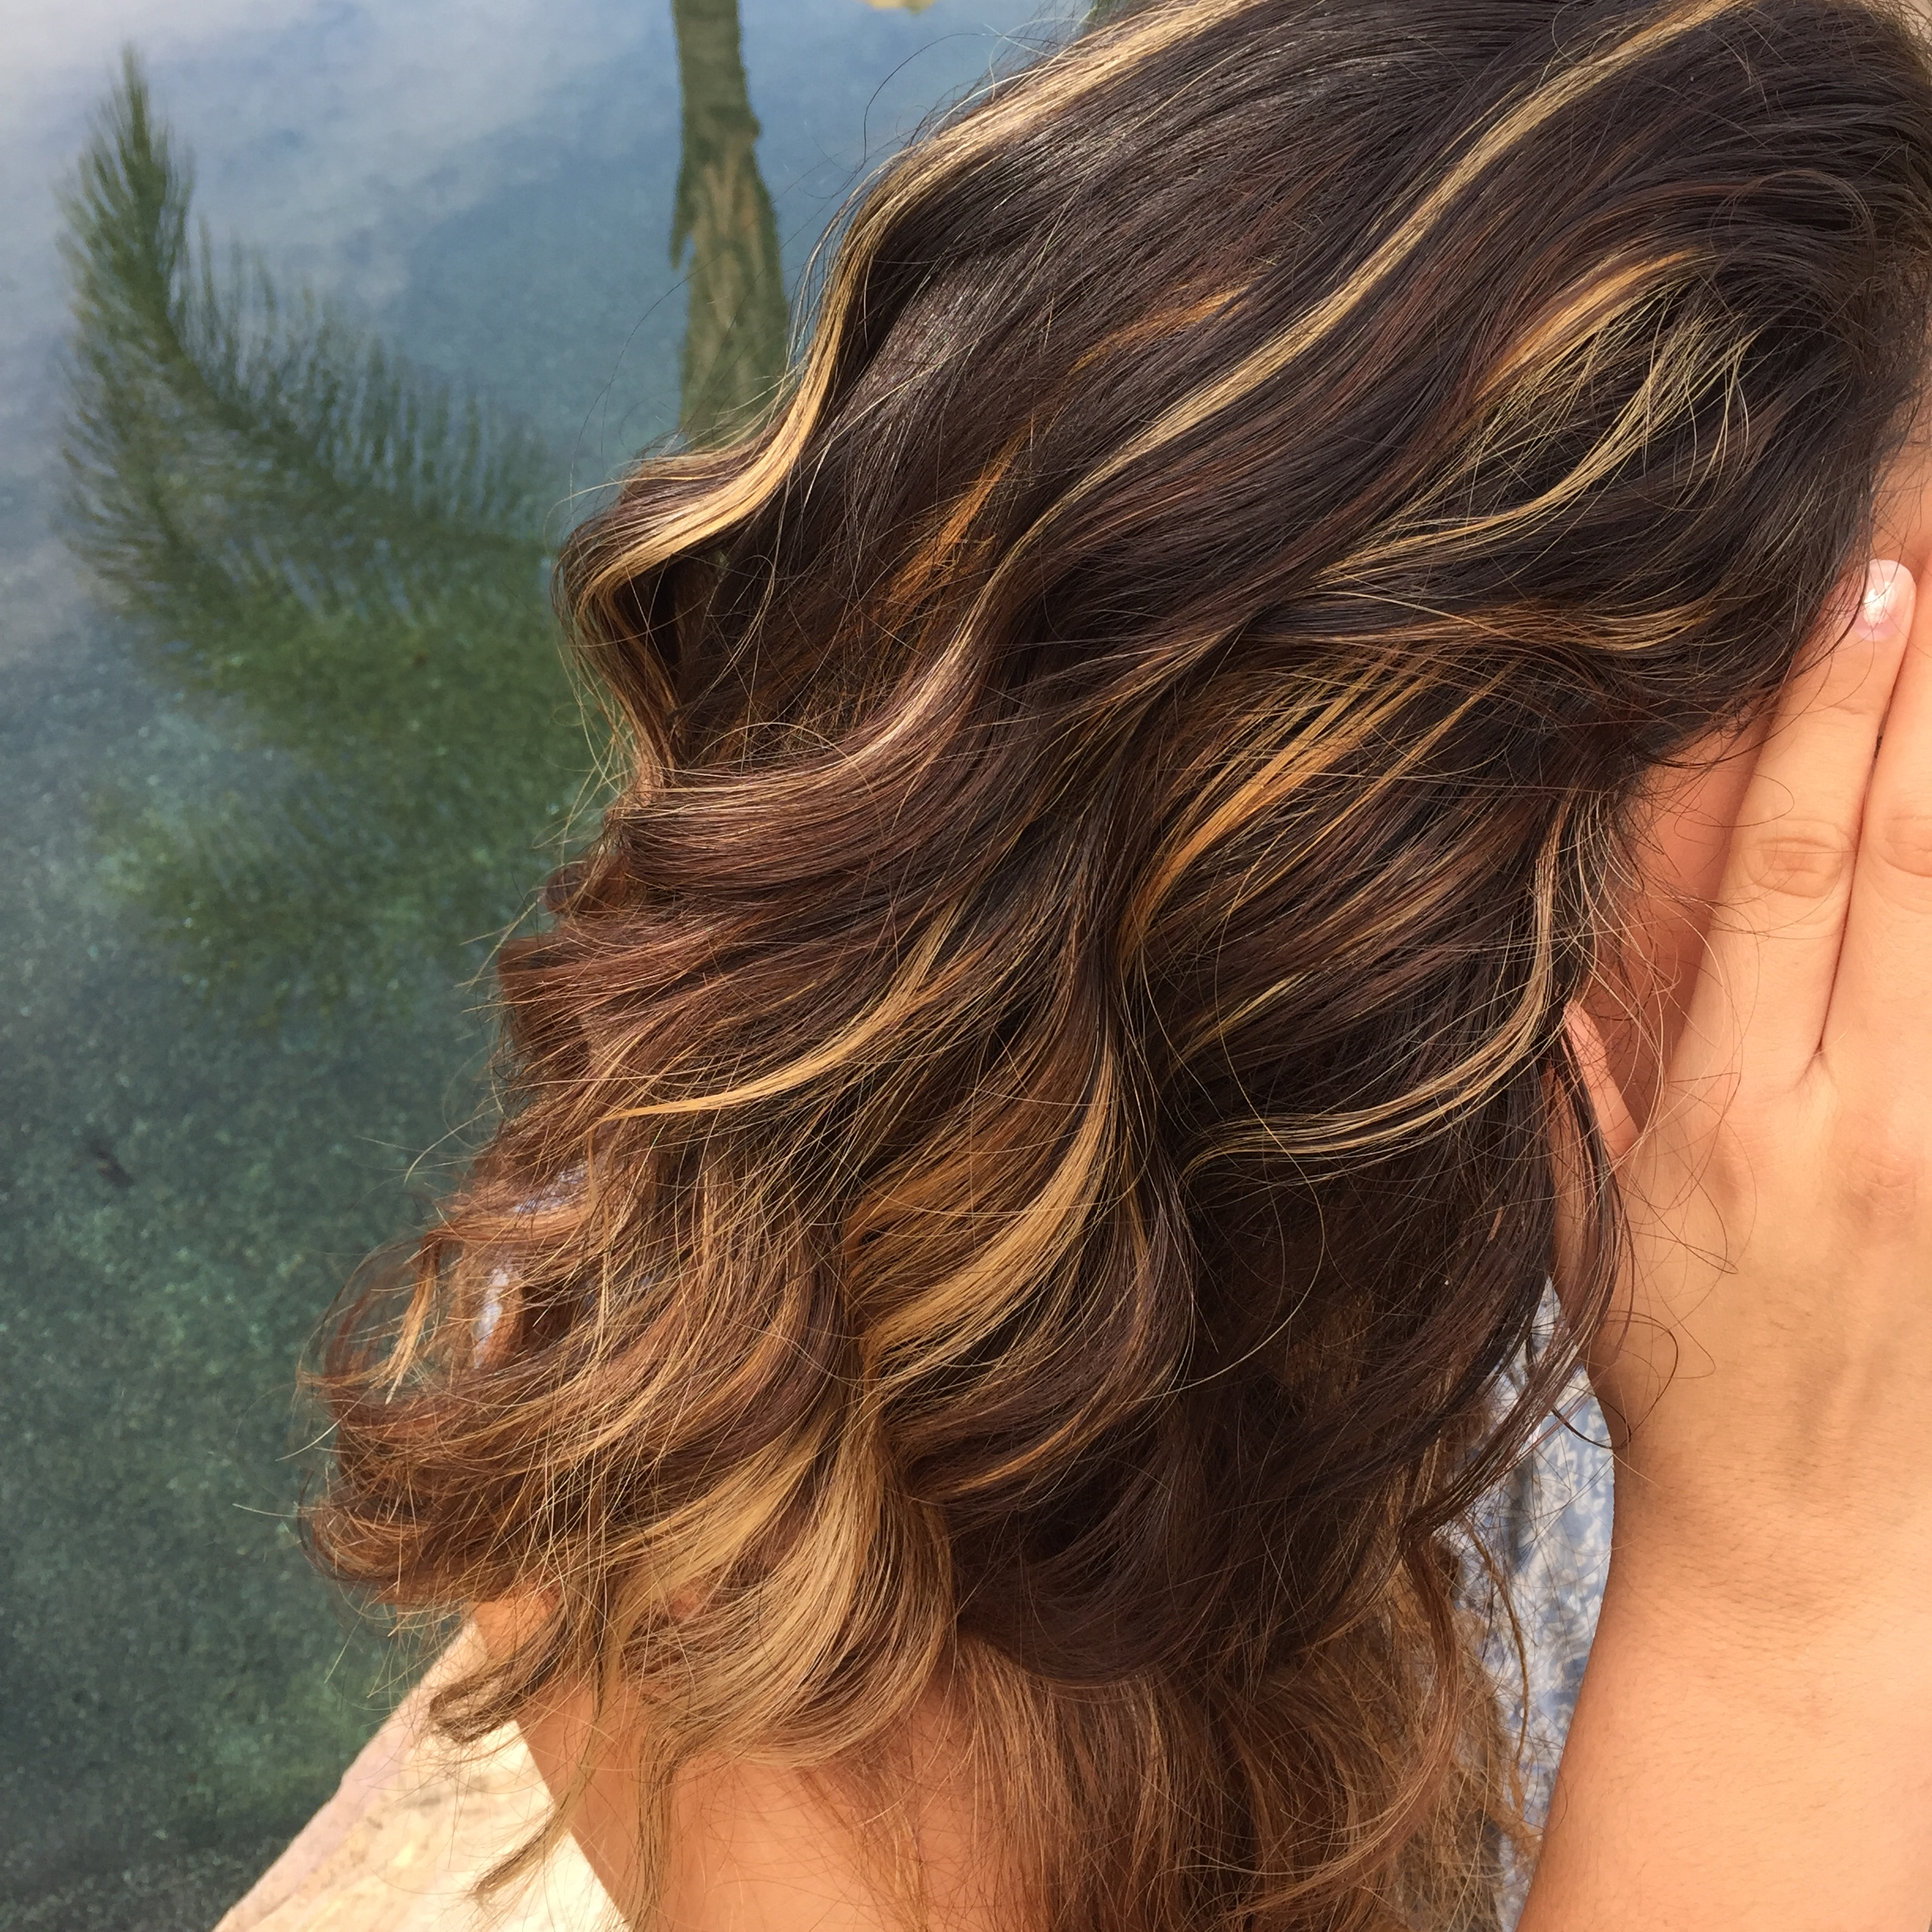 Diy overnight curlswaves seton girls hairstyles i hope you enjoy this super easy diy way to get lovely effortless curls waves this is my favorite way to get some lovely movement in my hair solutioingenieria Gallery